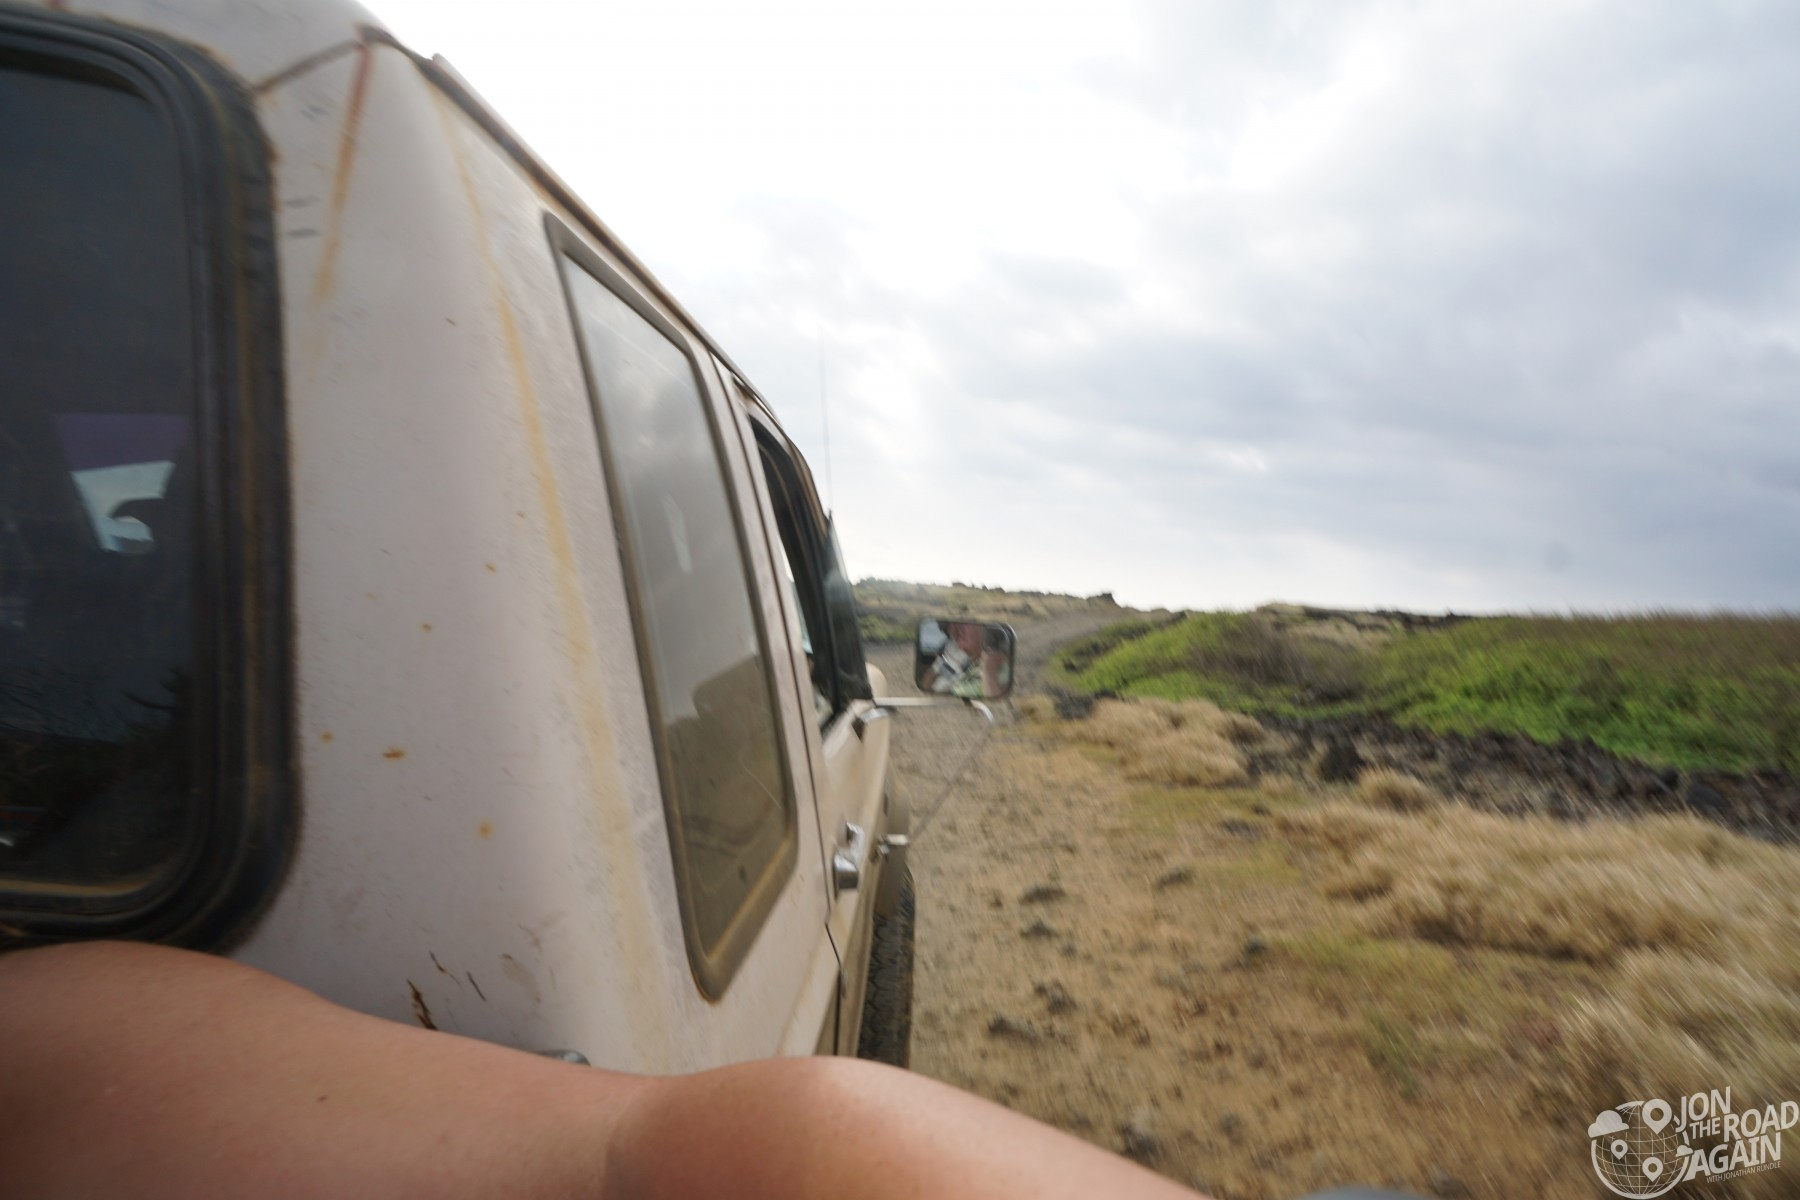 Riding in a truck to Green Sand Beach